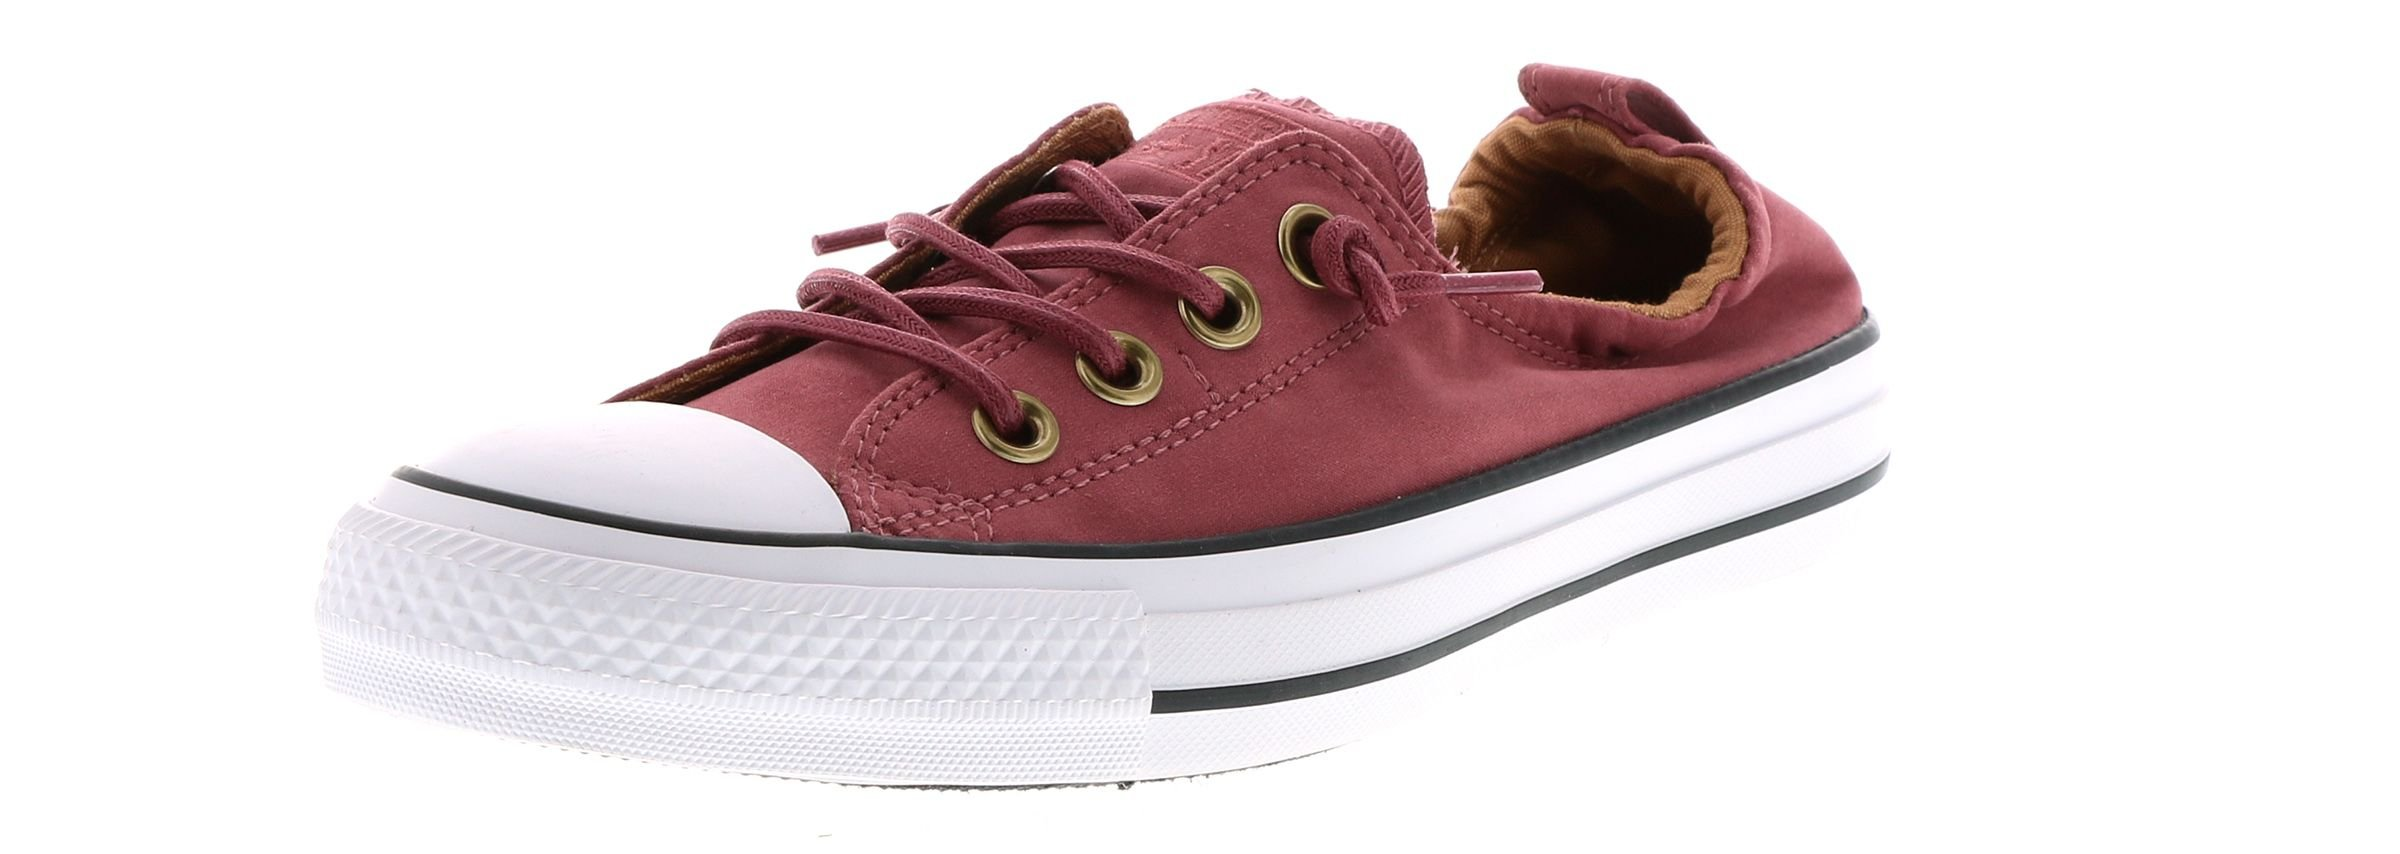 Converse Chuck Taylor All Star Shoreline Port/Raw Sugar/White Lace-Up Sneaker - 8 B(M) US